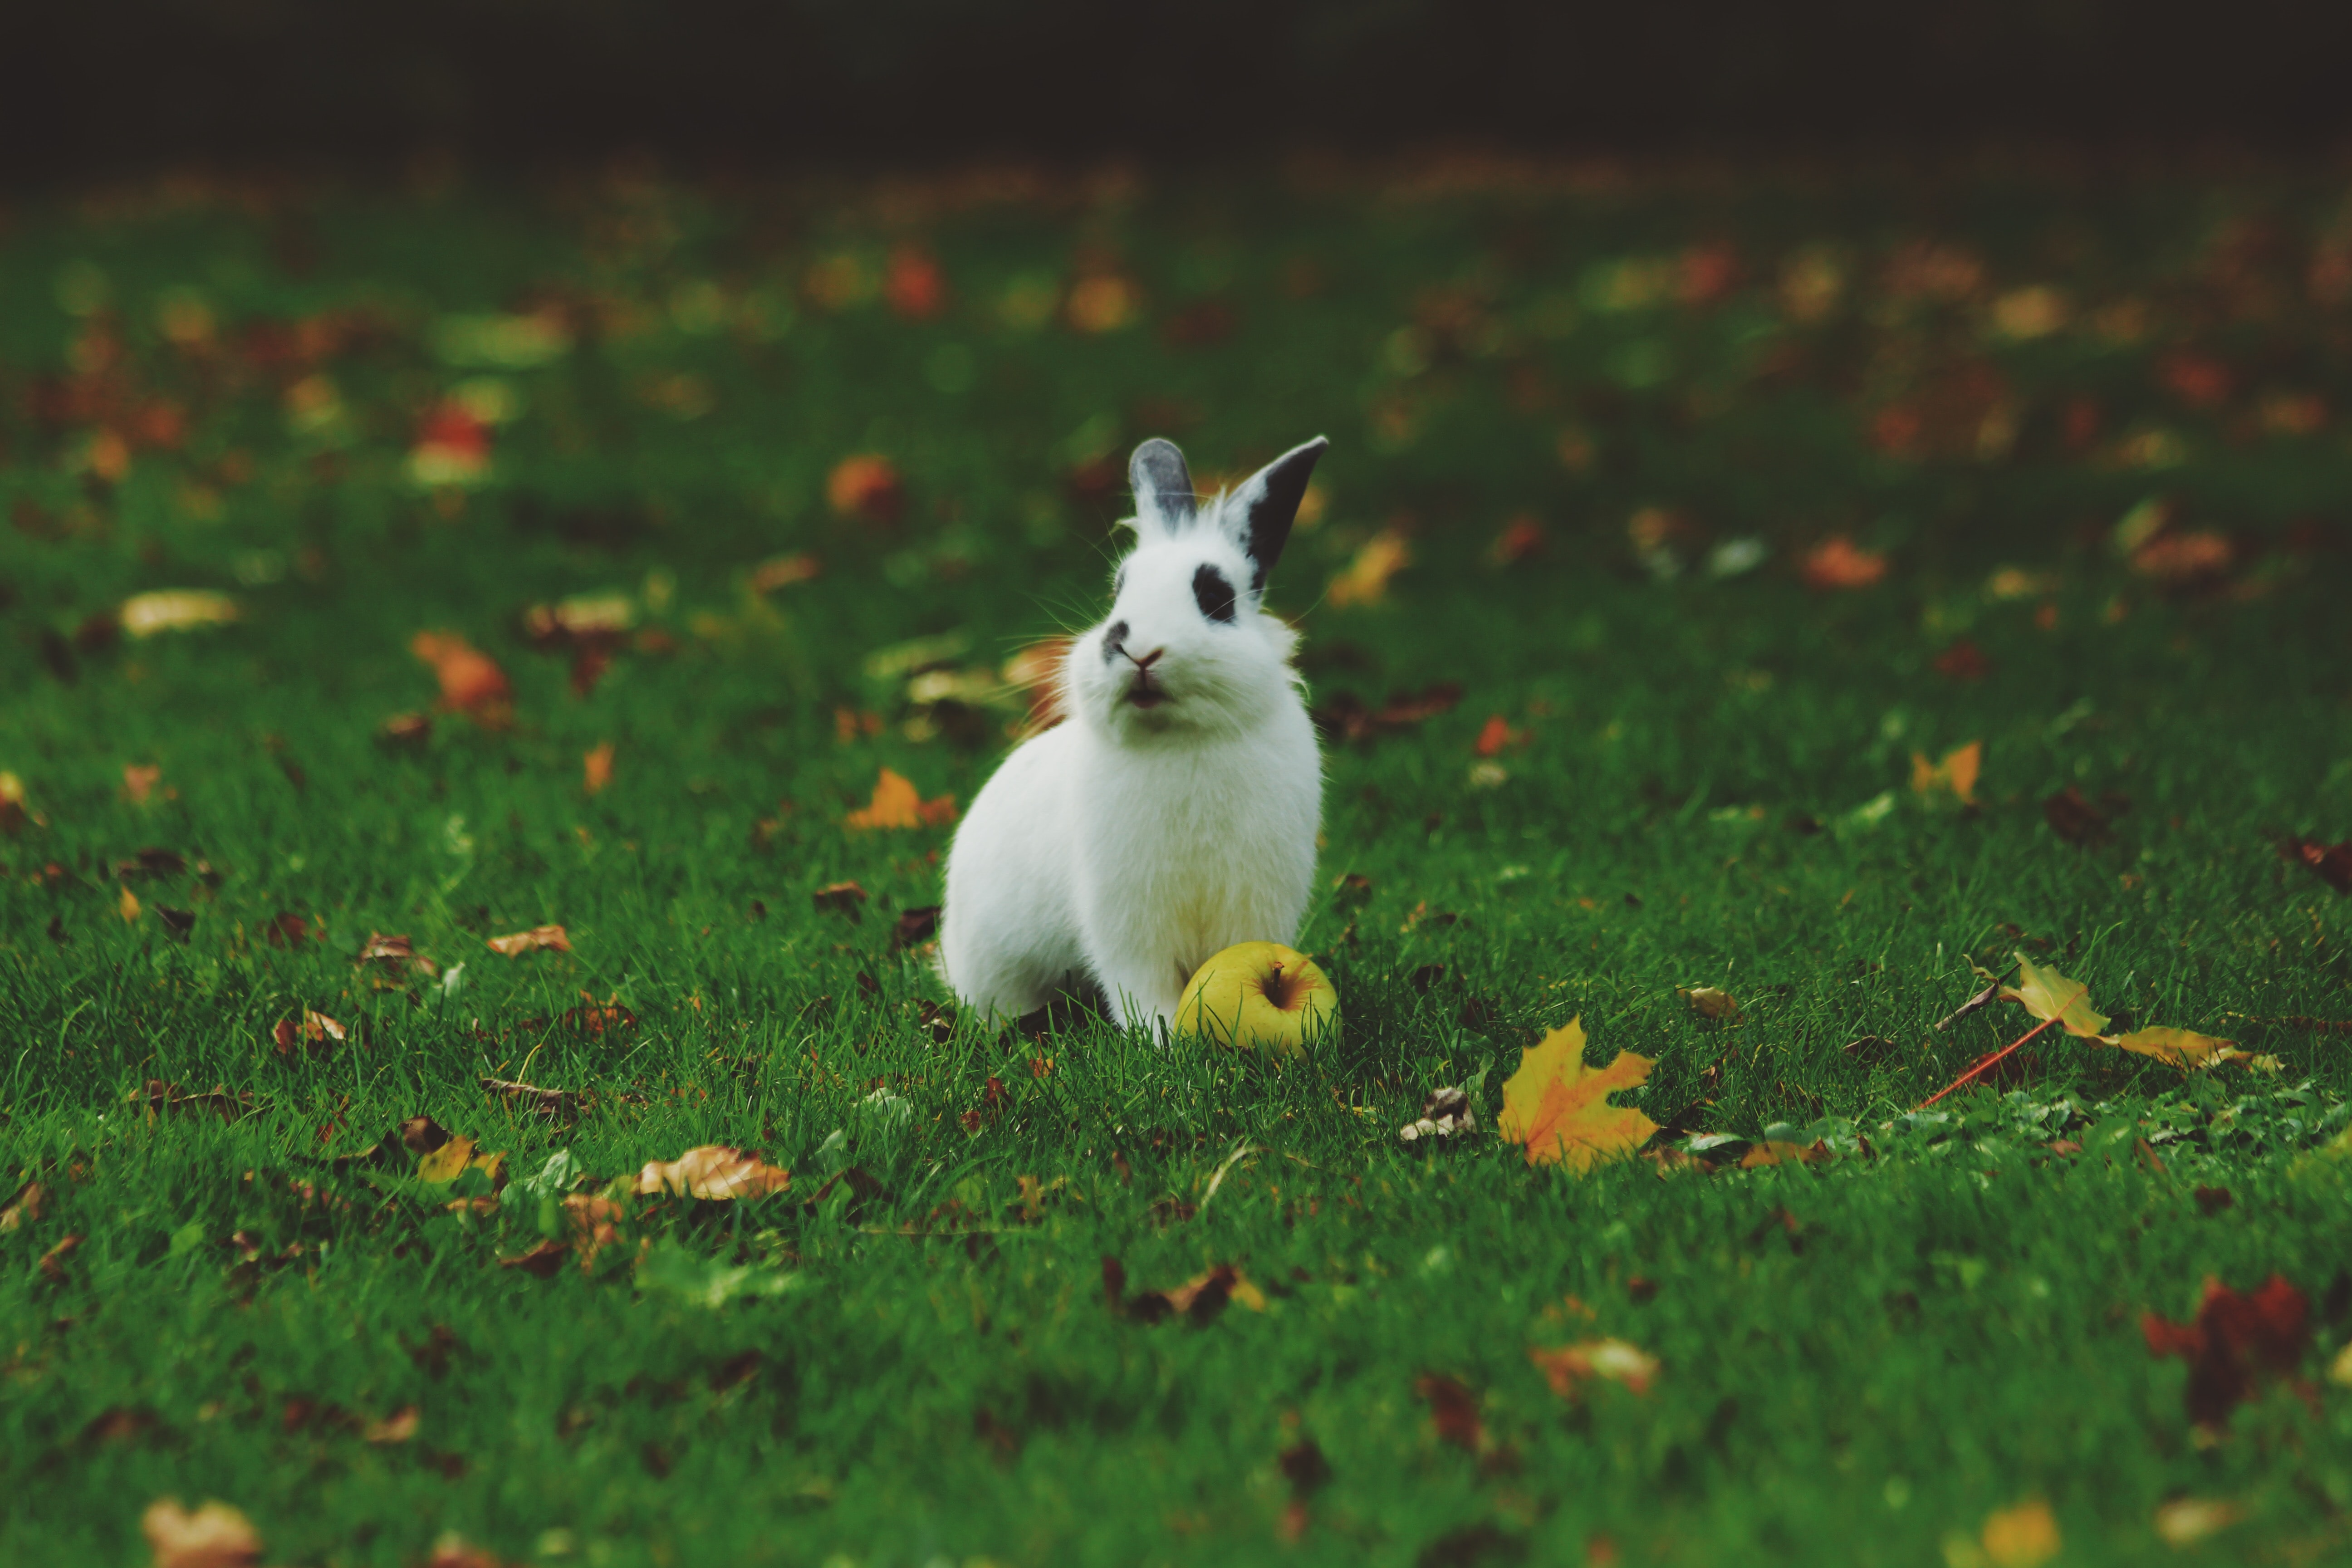 A white rabbit with black spotted eyes beside a fallen green apple on cut grass and autumn leaves